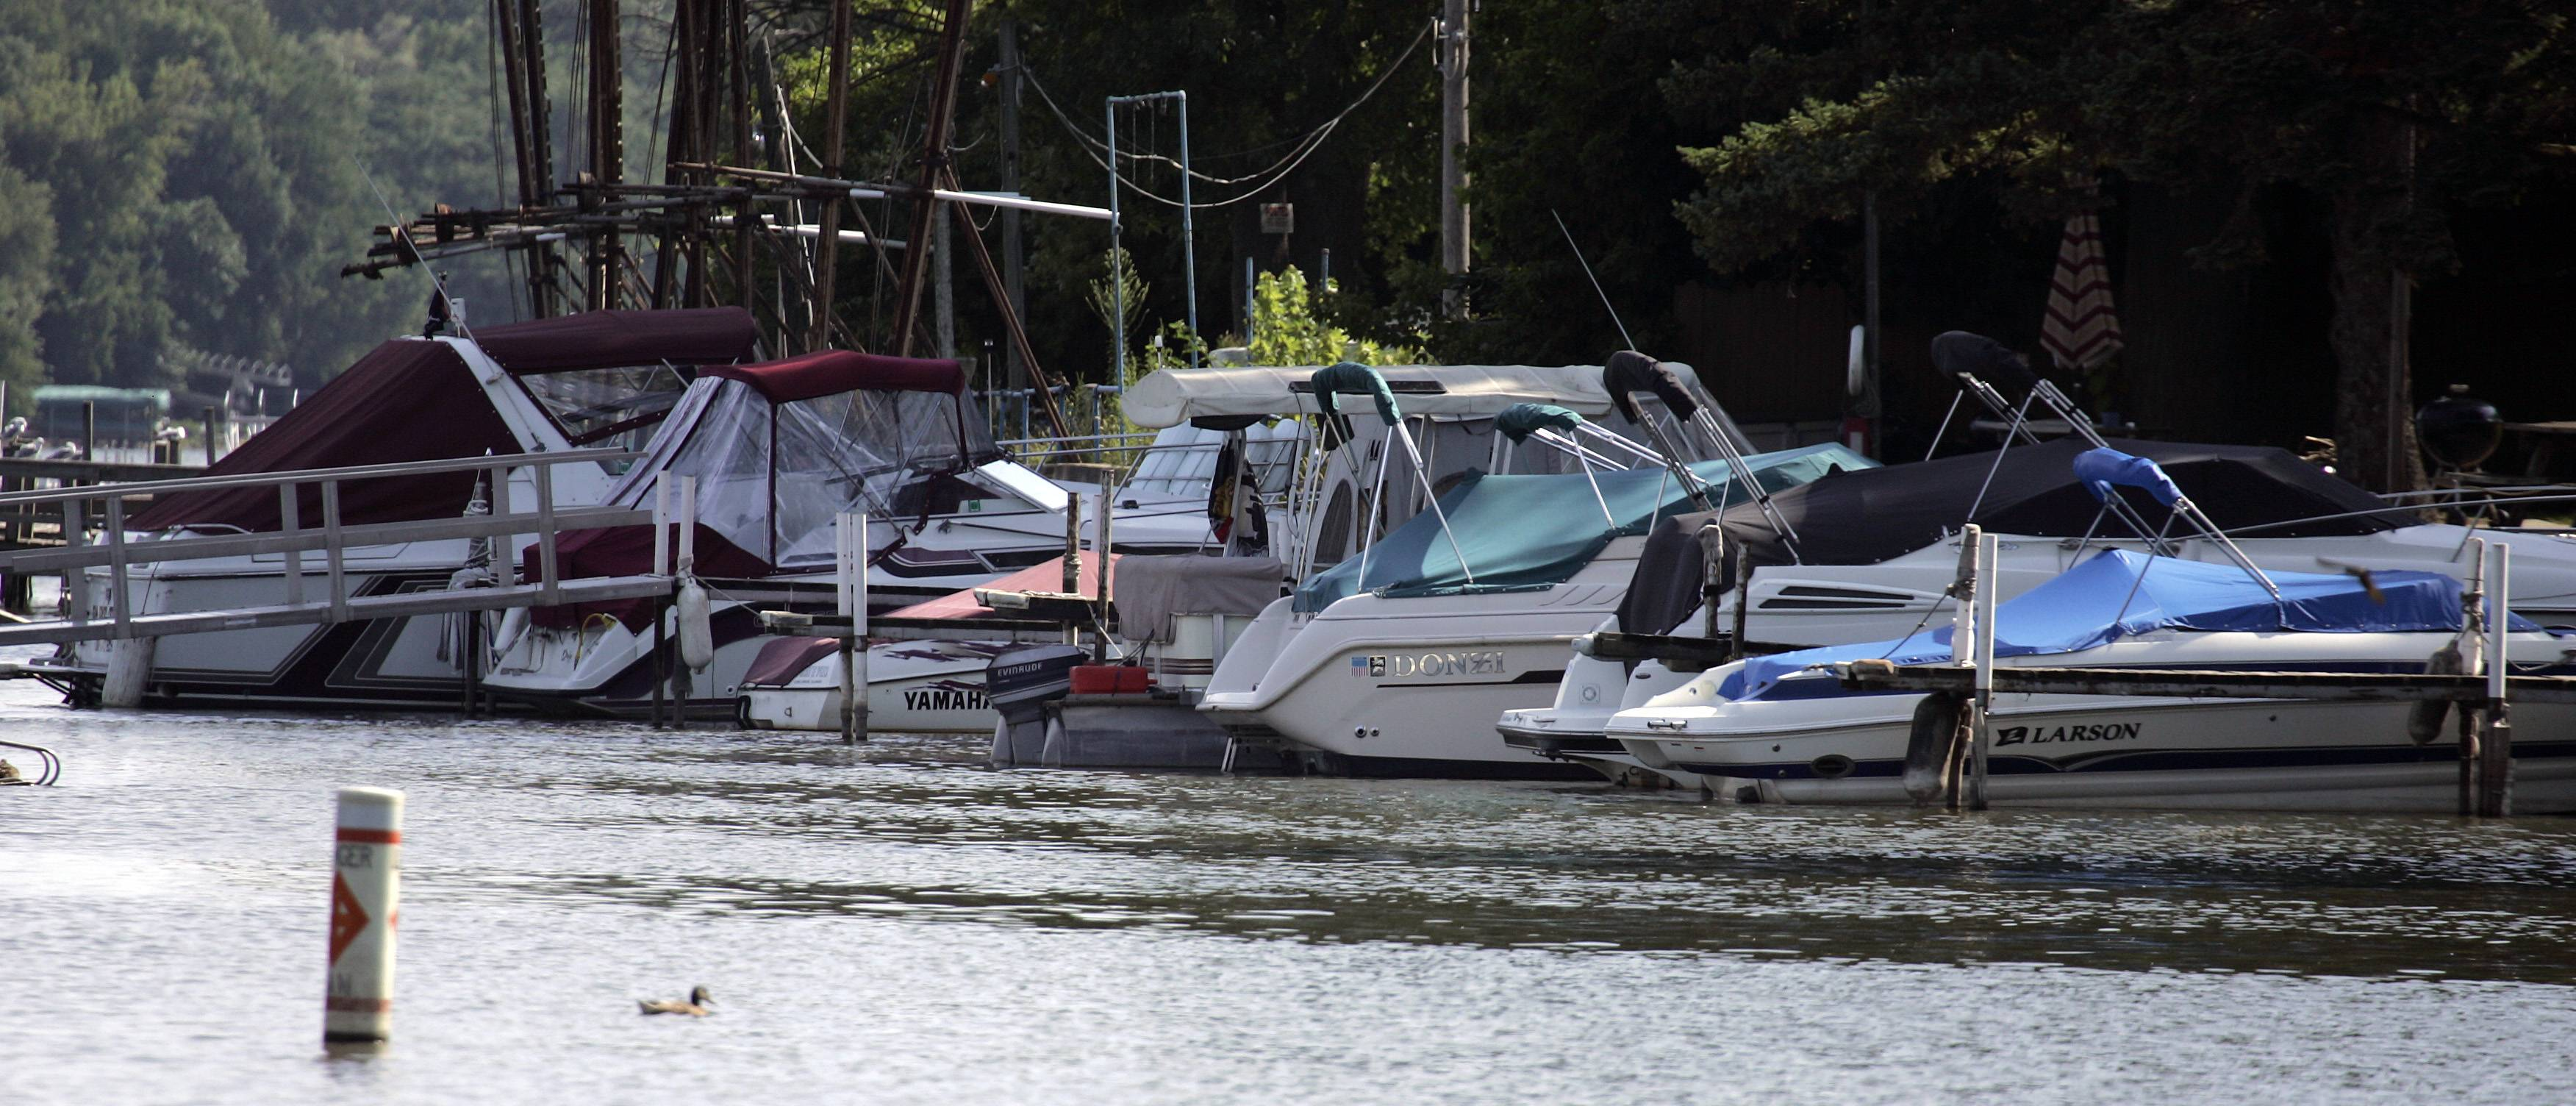 Boats dock along the Fox River as it runs through Algonquin. Algonquin and Carpentersville recently received planning assistance for a grant that will identify recreational activities along the river between the communities.